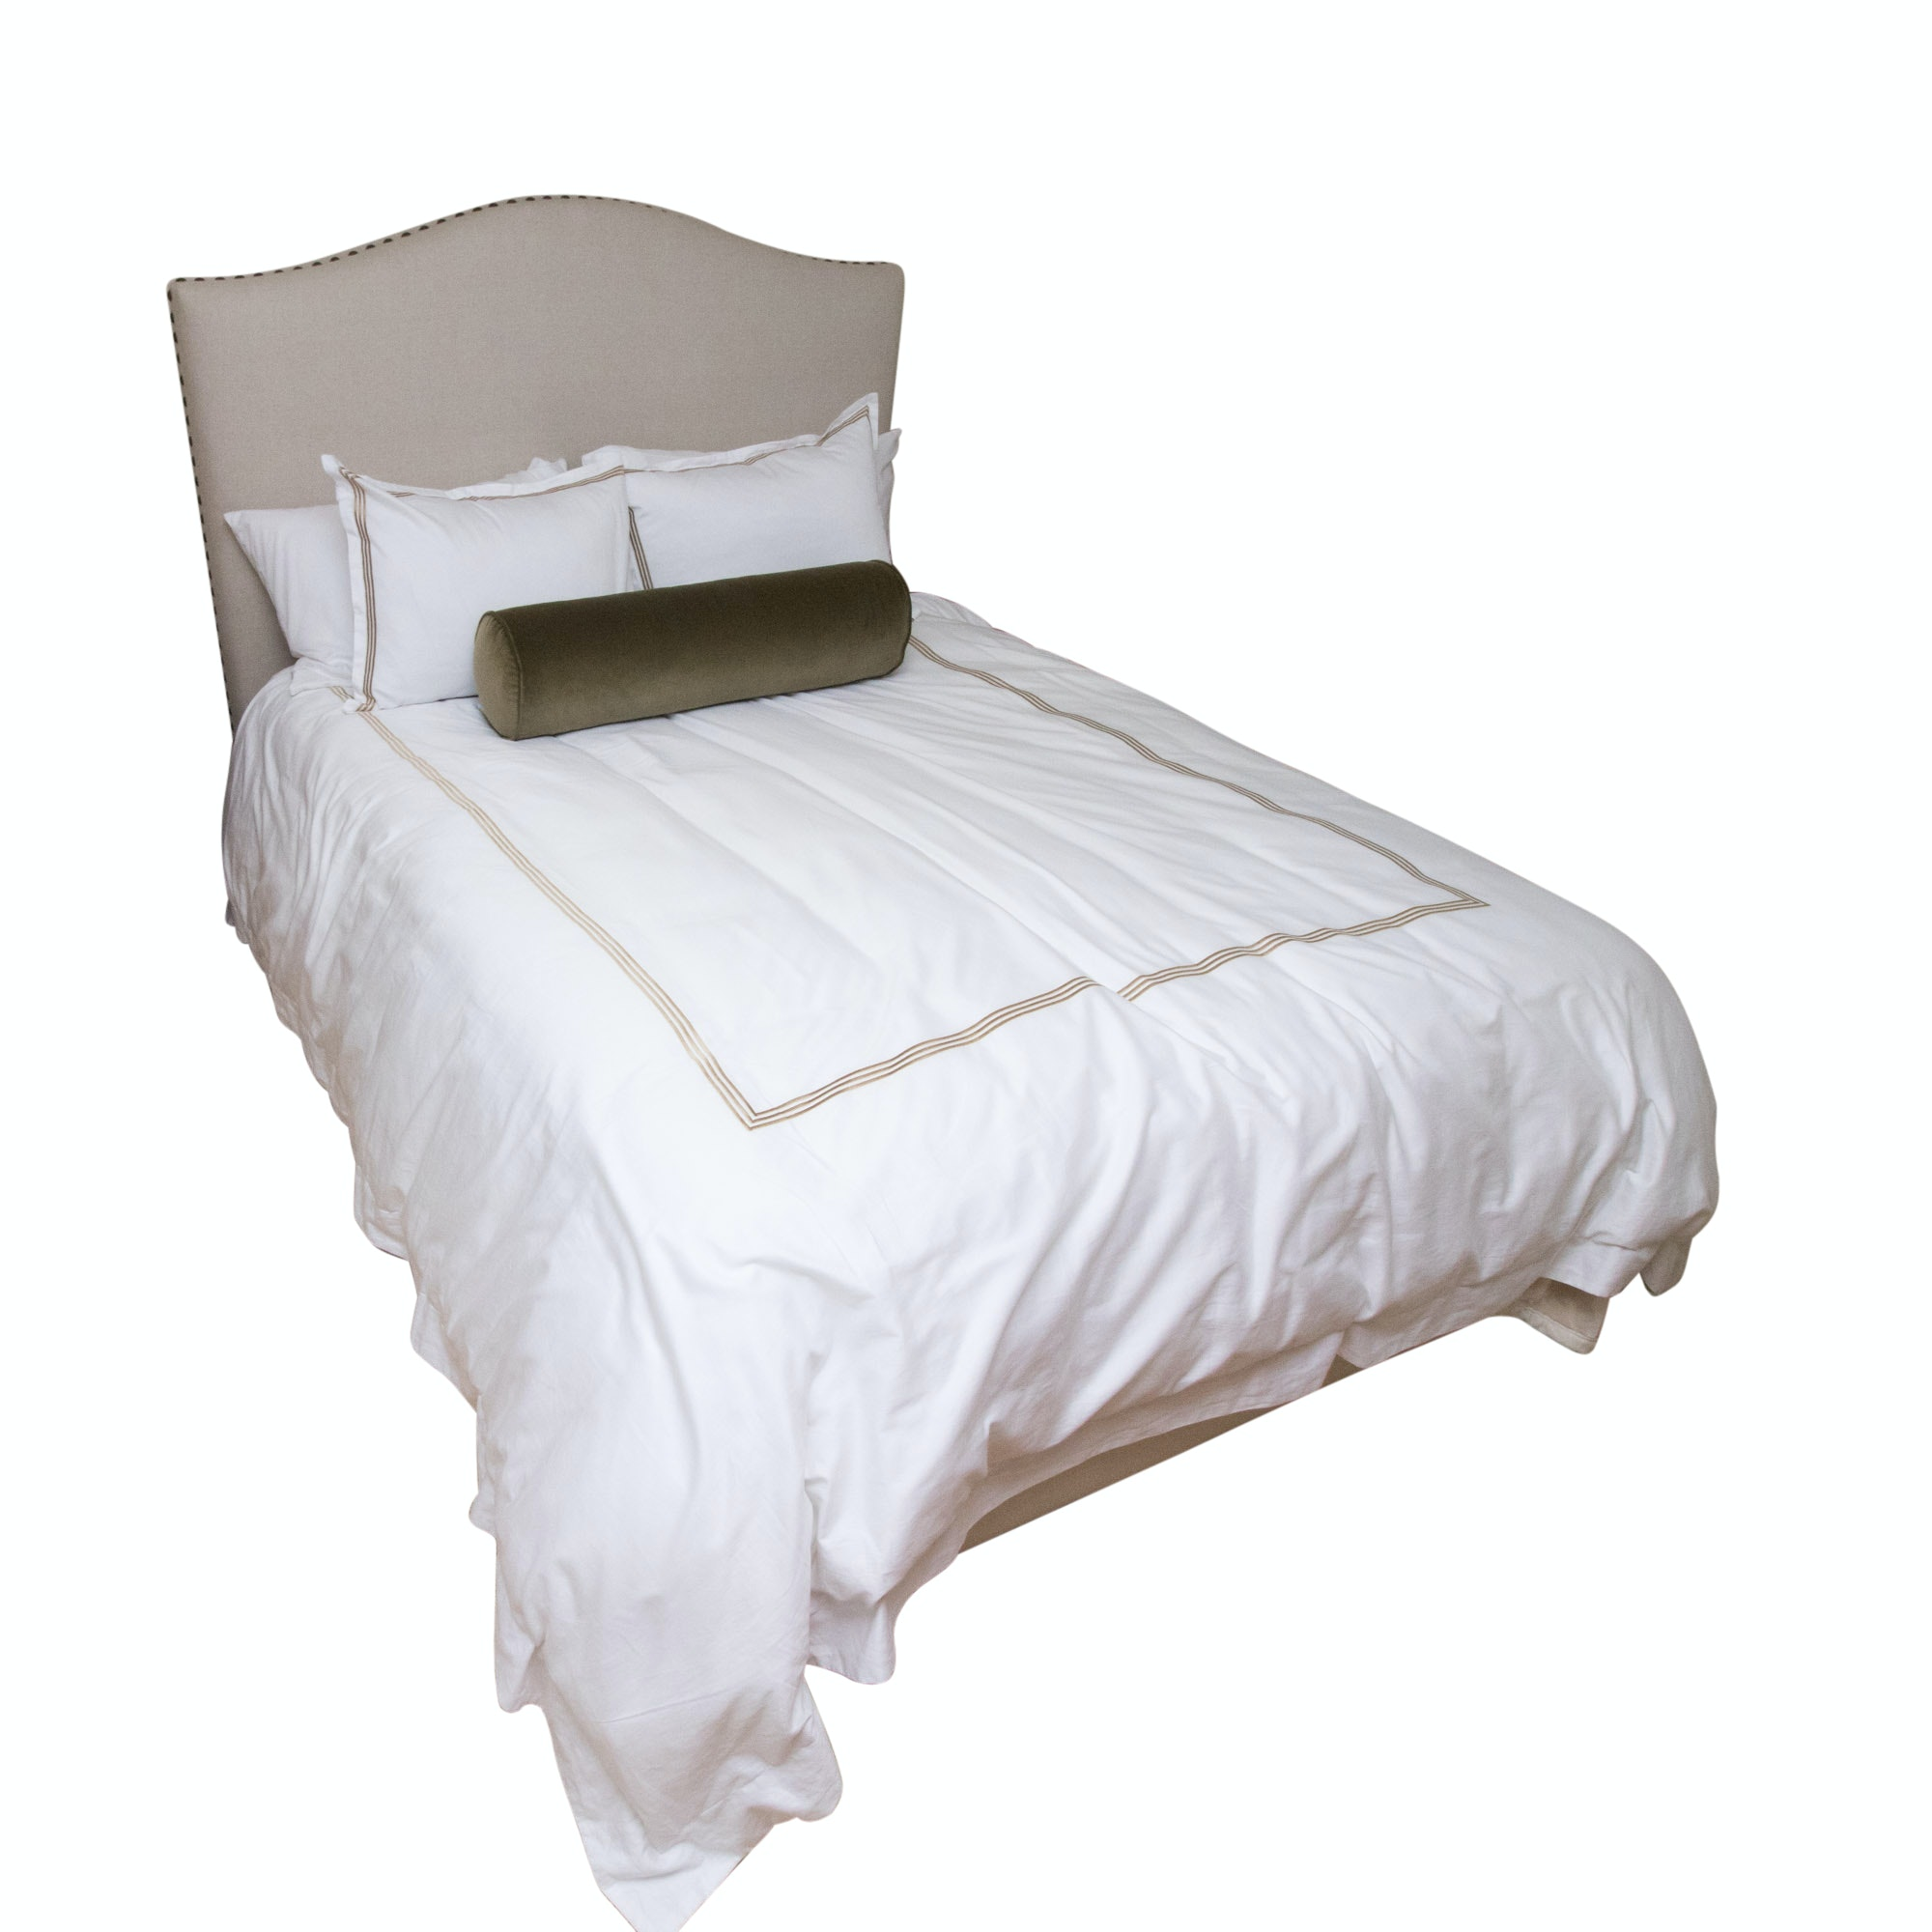 Contemporary Upholstered Queen Size Bed by Pottery Barn with Bedding